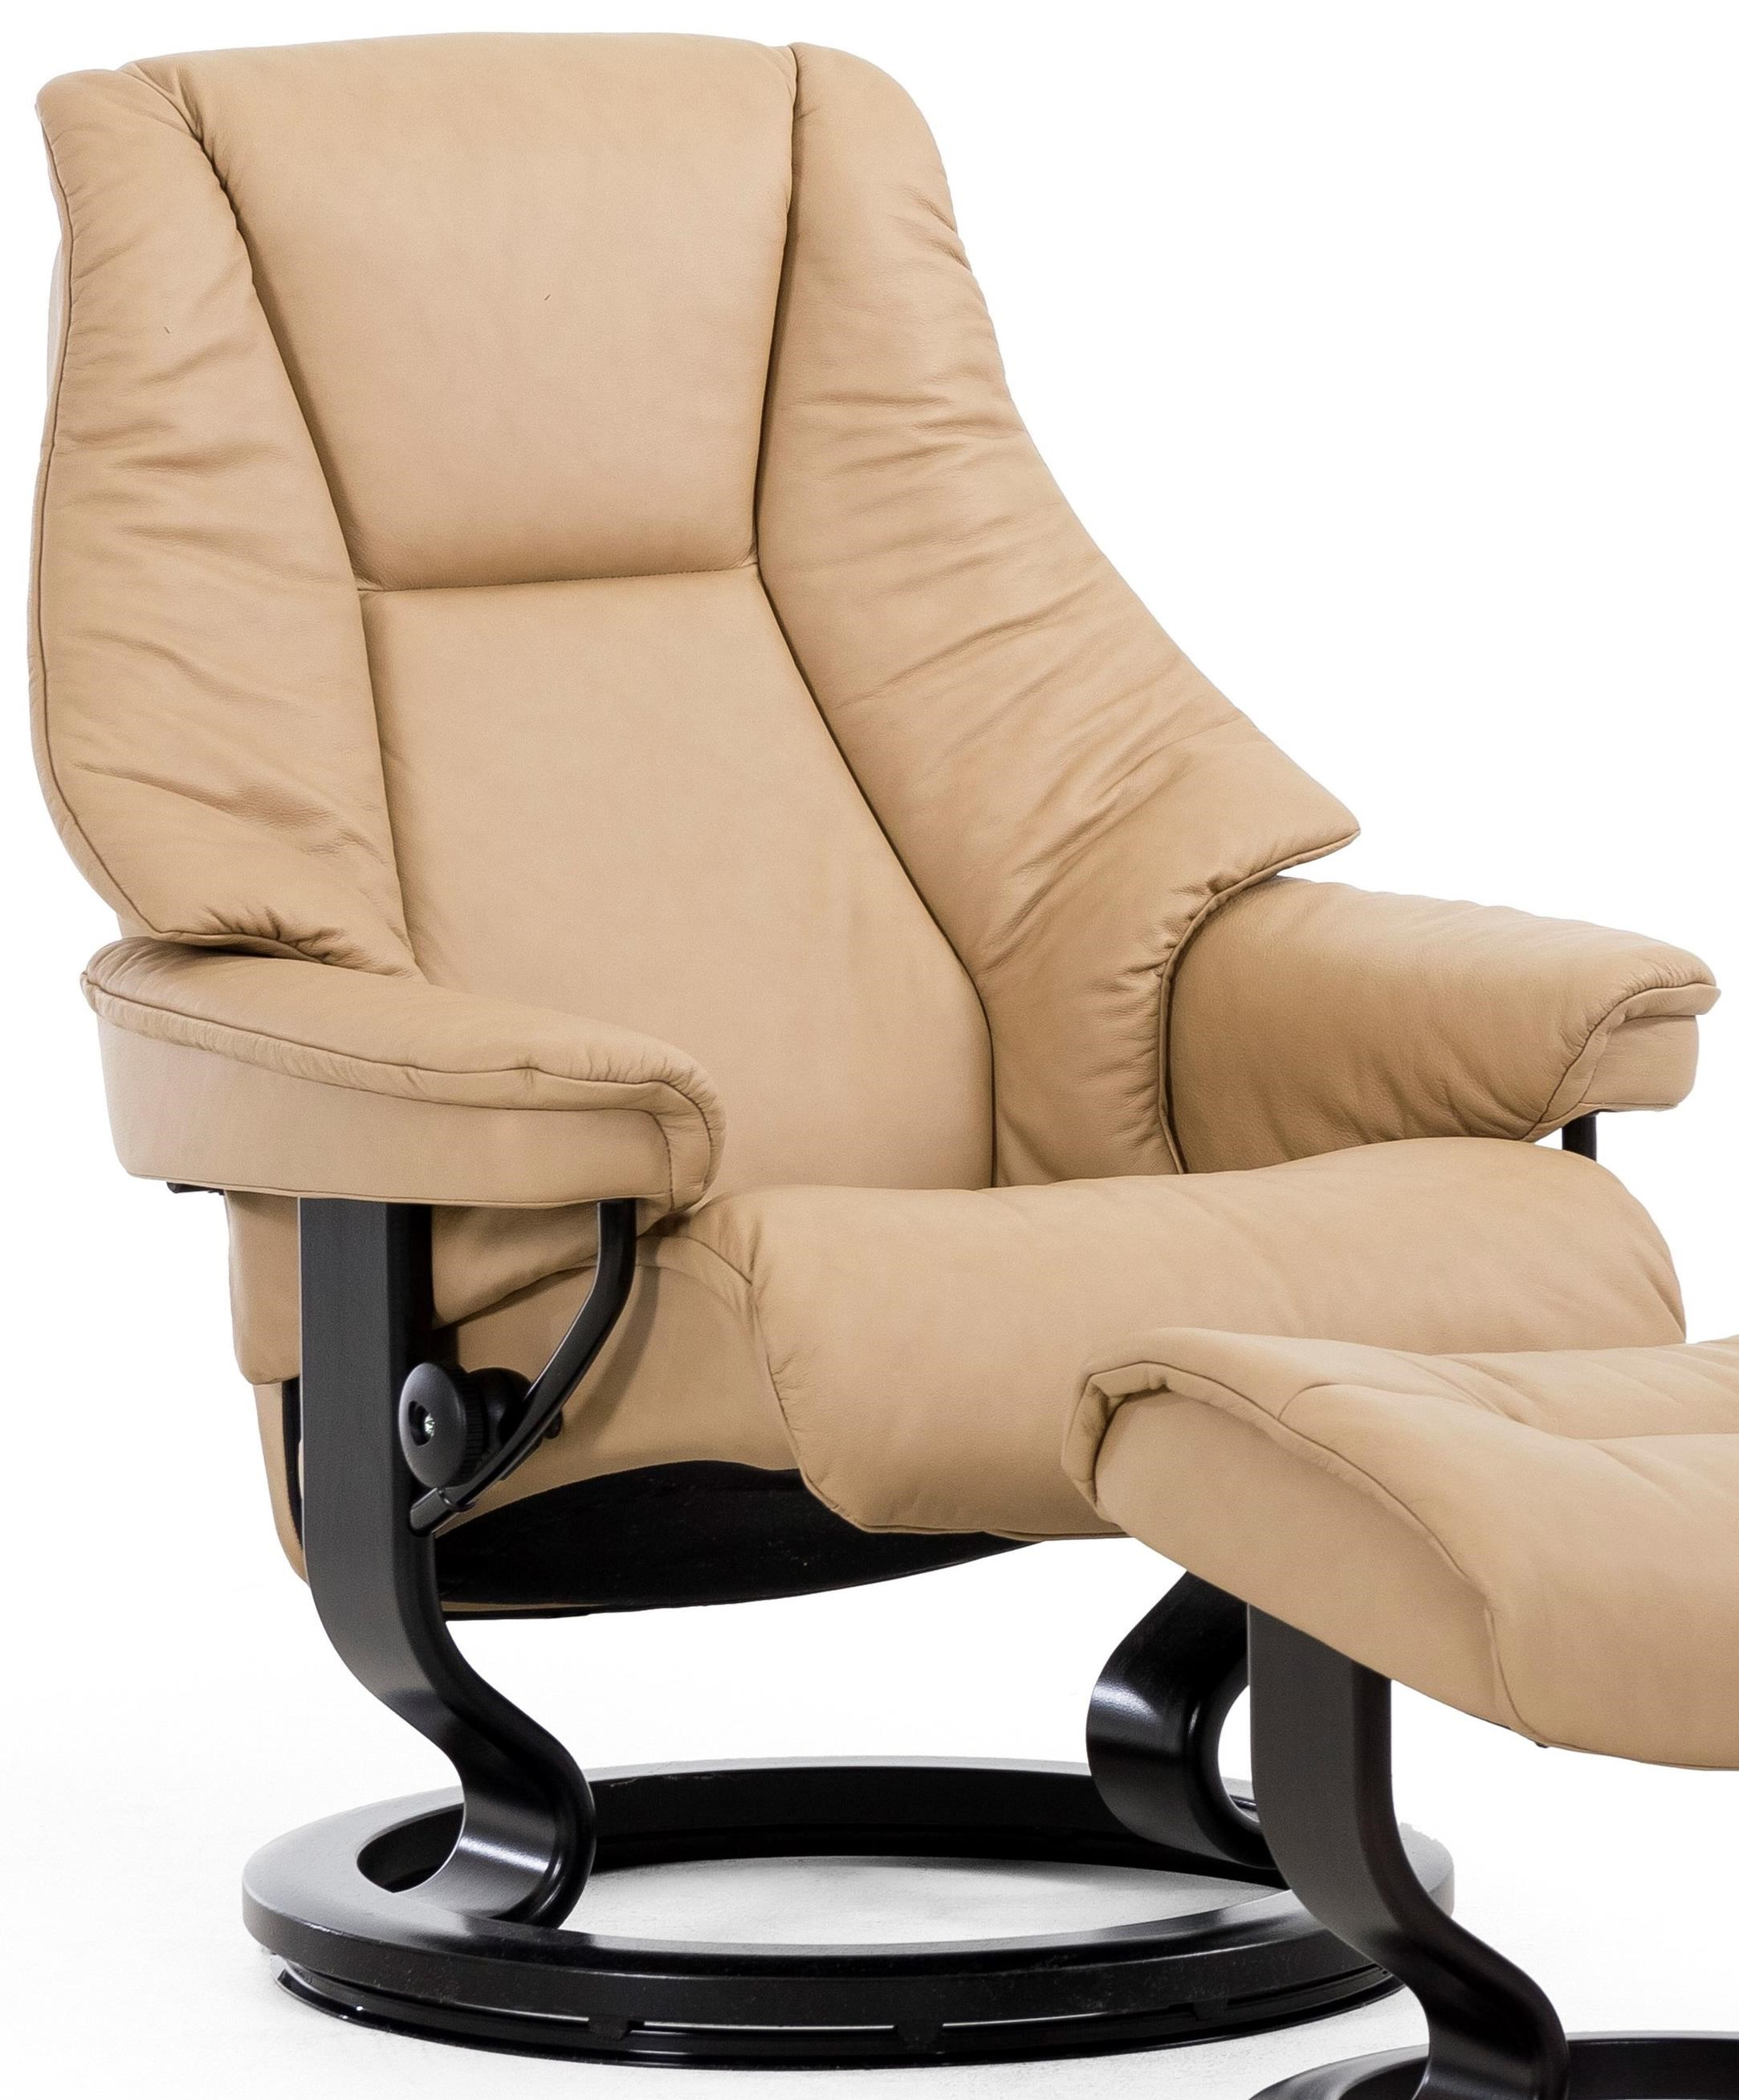 Live Large Reclining Chair with Classic Base by Stressless at Jordan's Home Furnishings